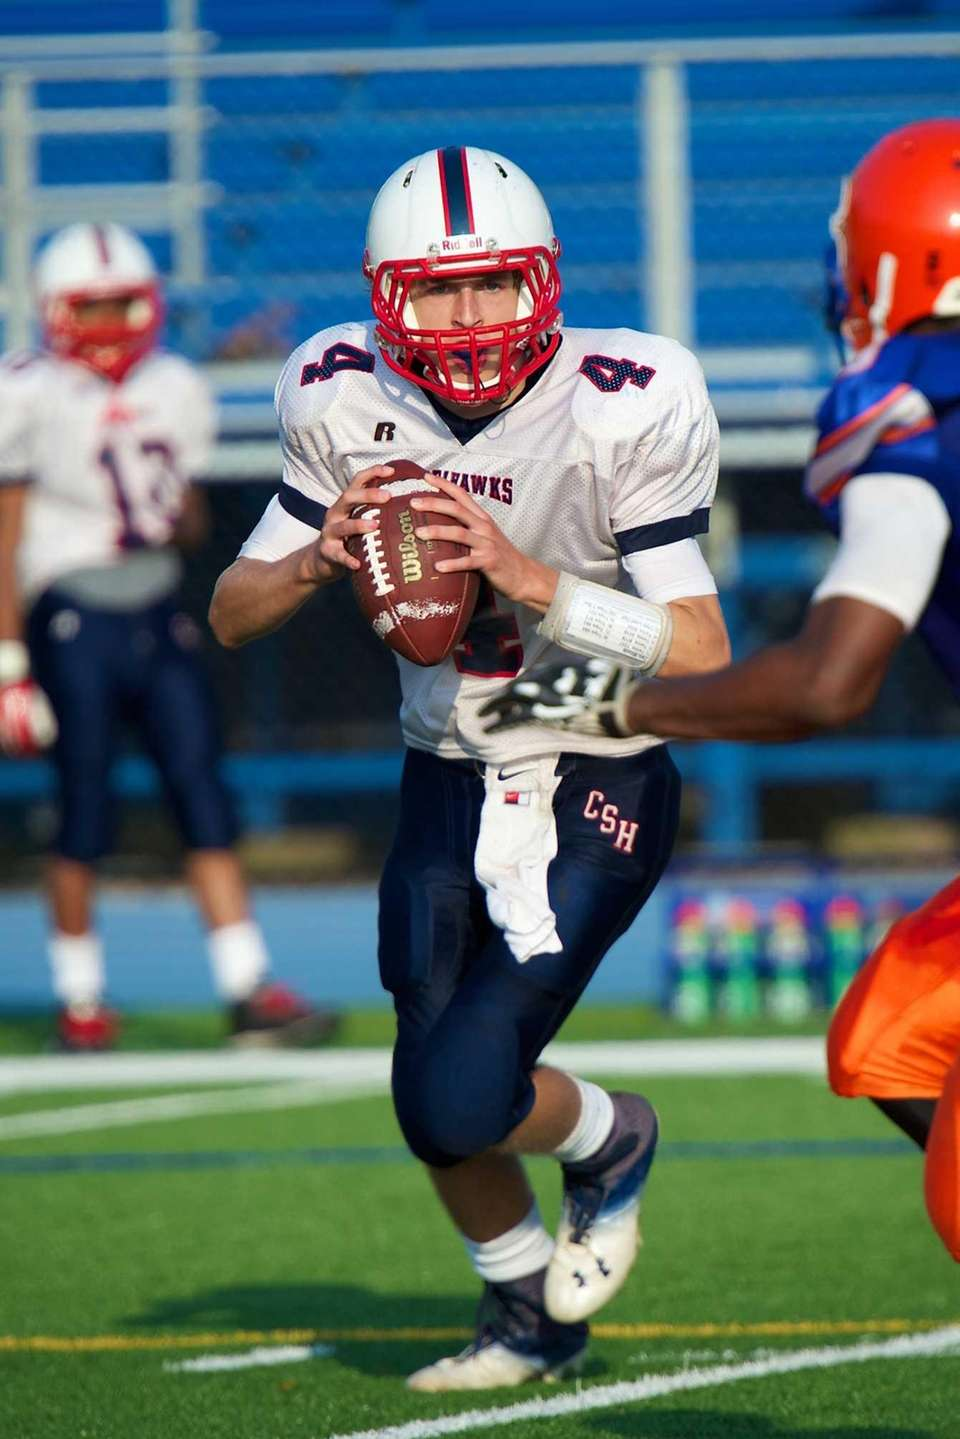 Cold Spring Harbor quarterback Wes Szajna rolls out